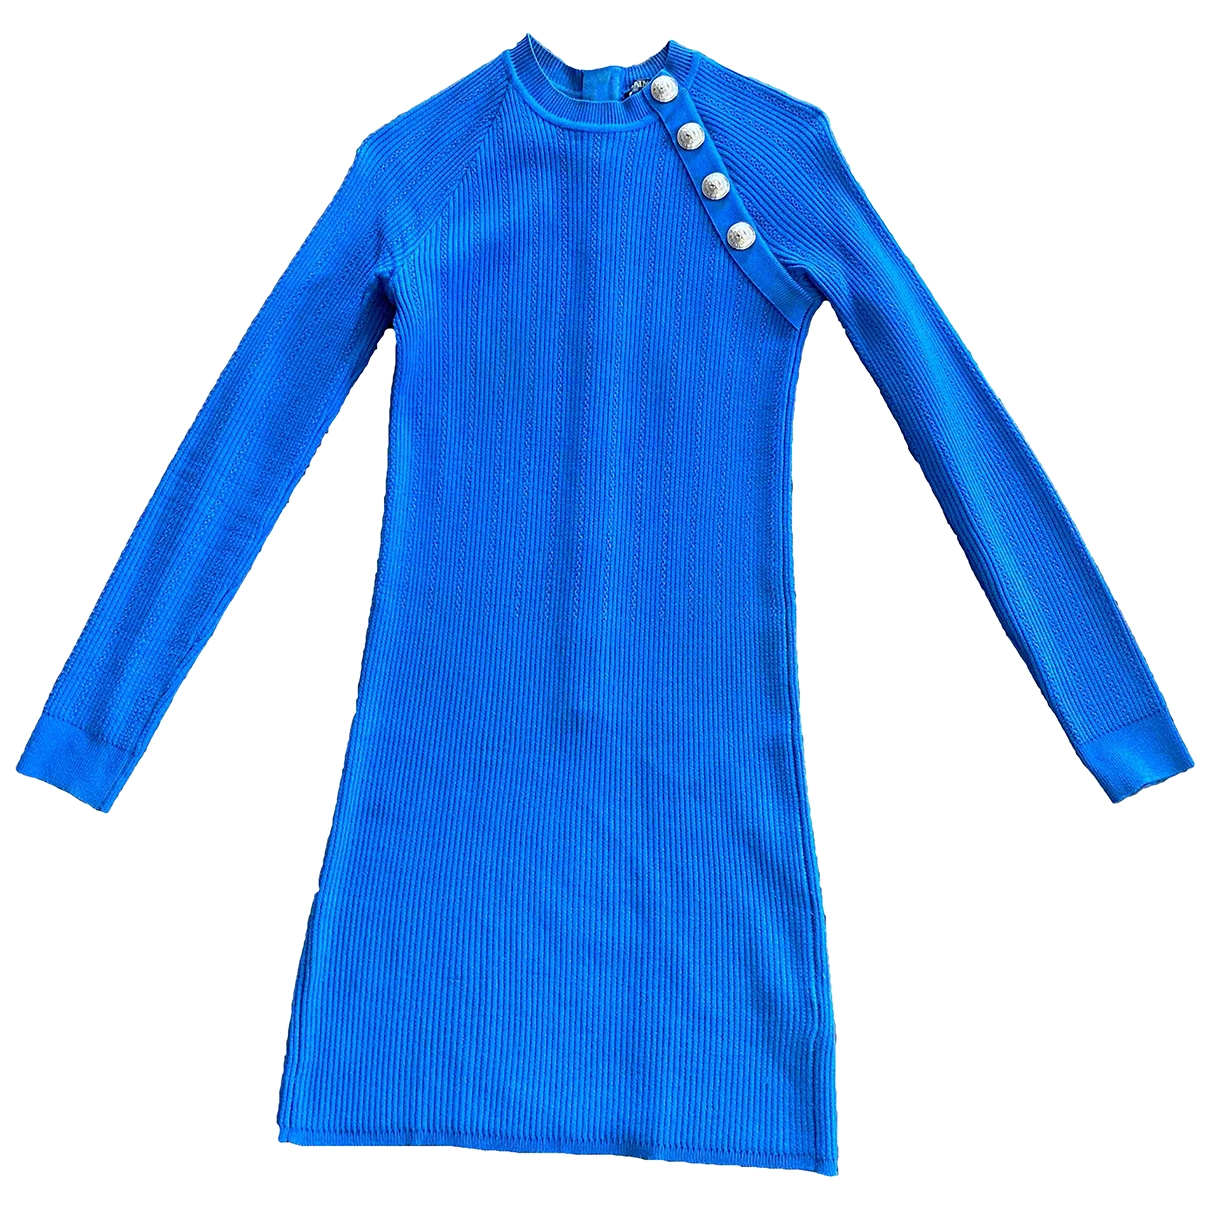 Balmain \N Blue dress for Women 38 FR